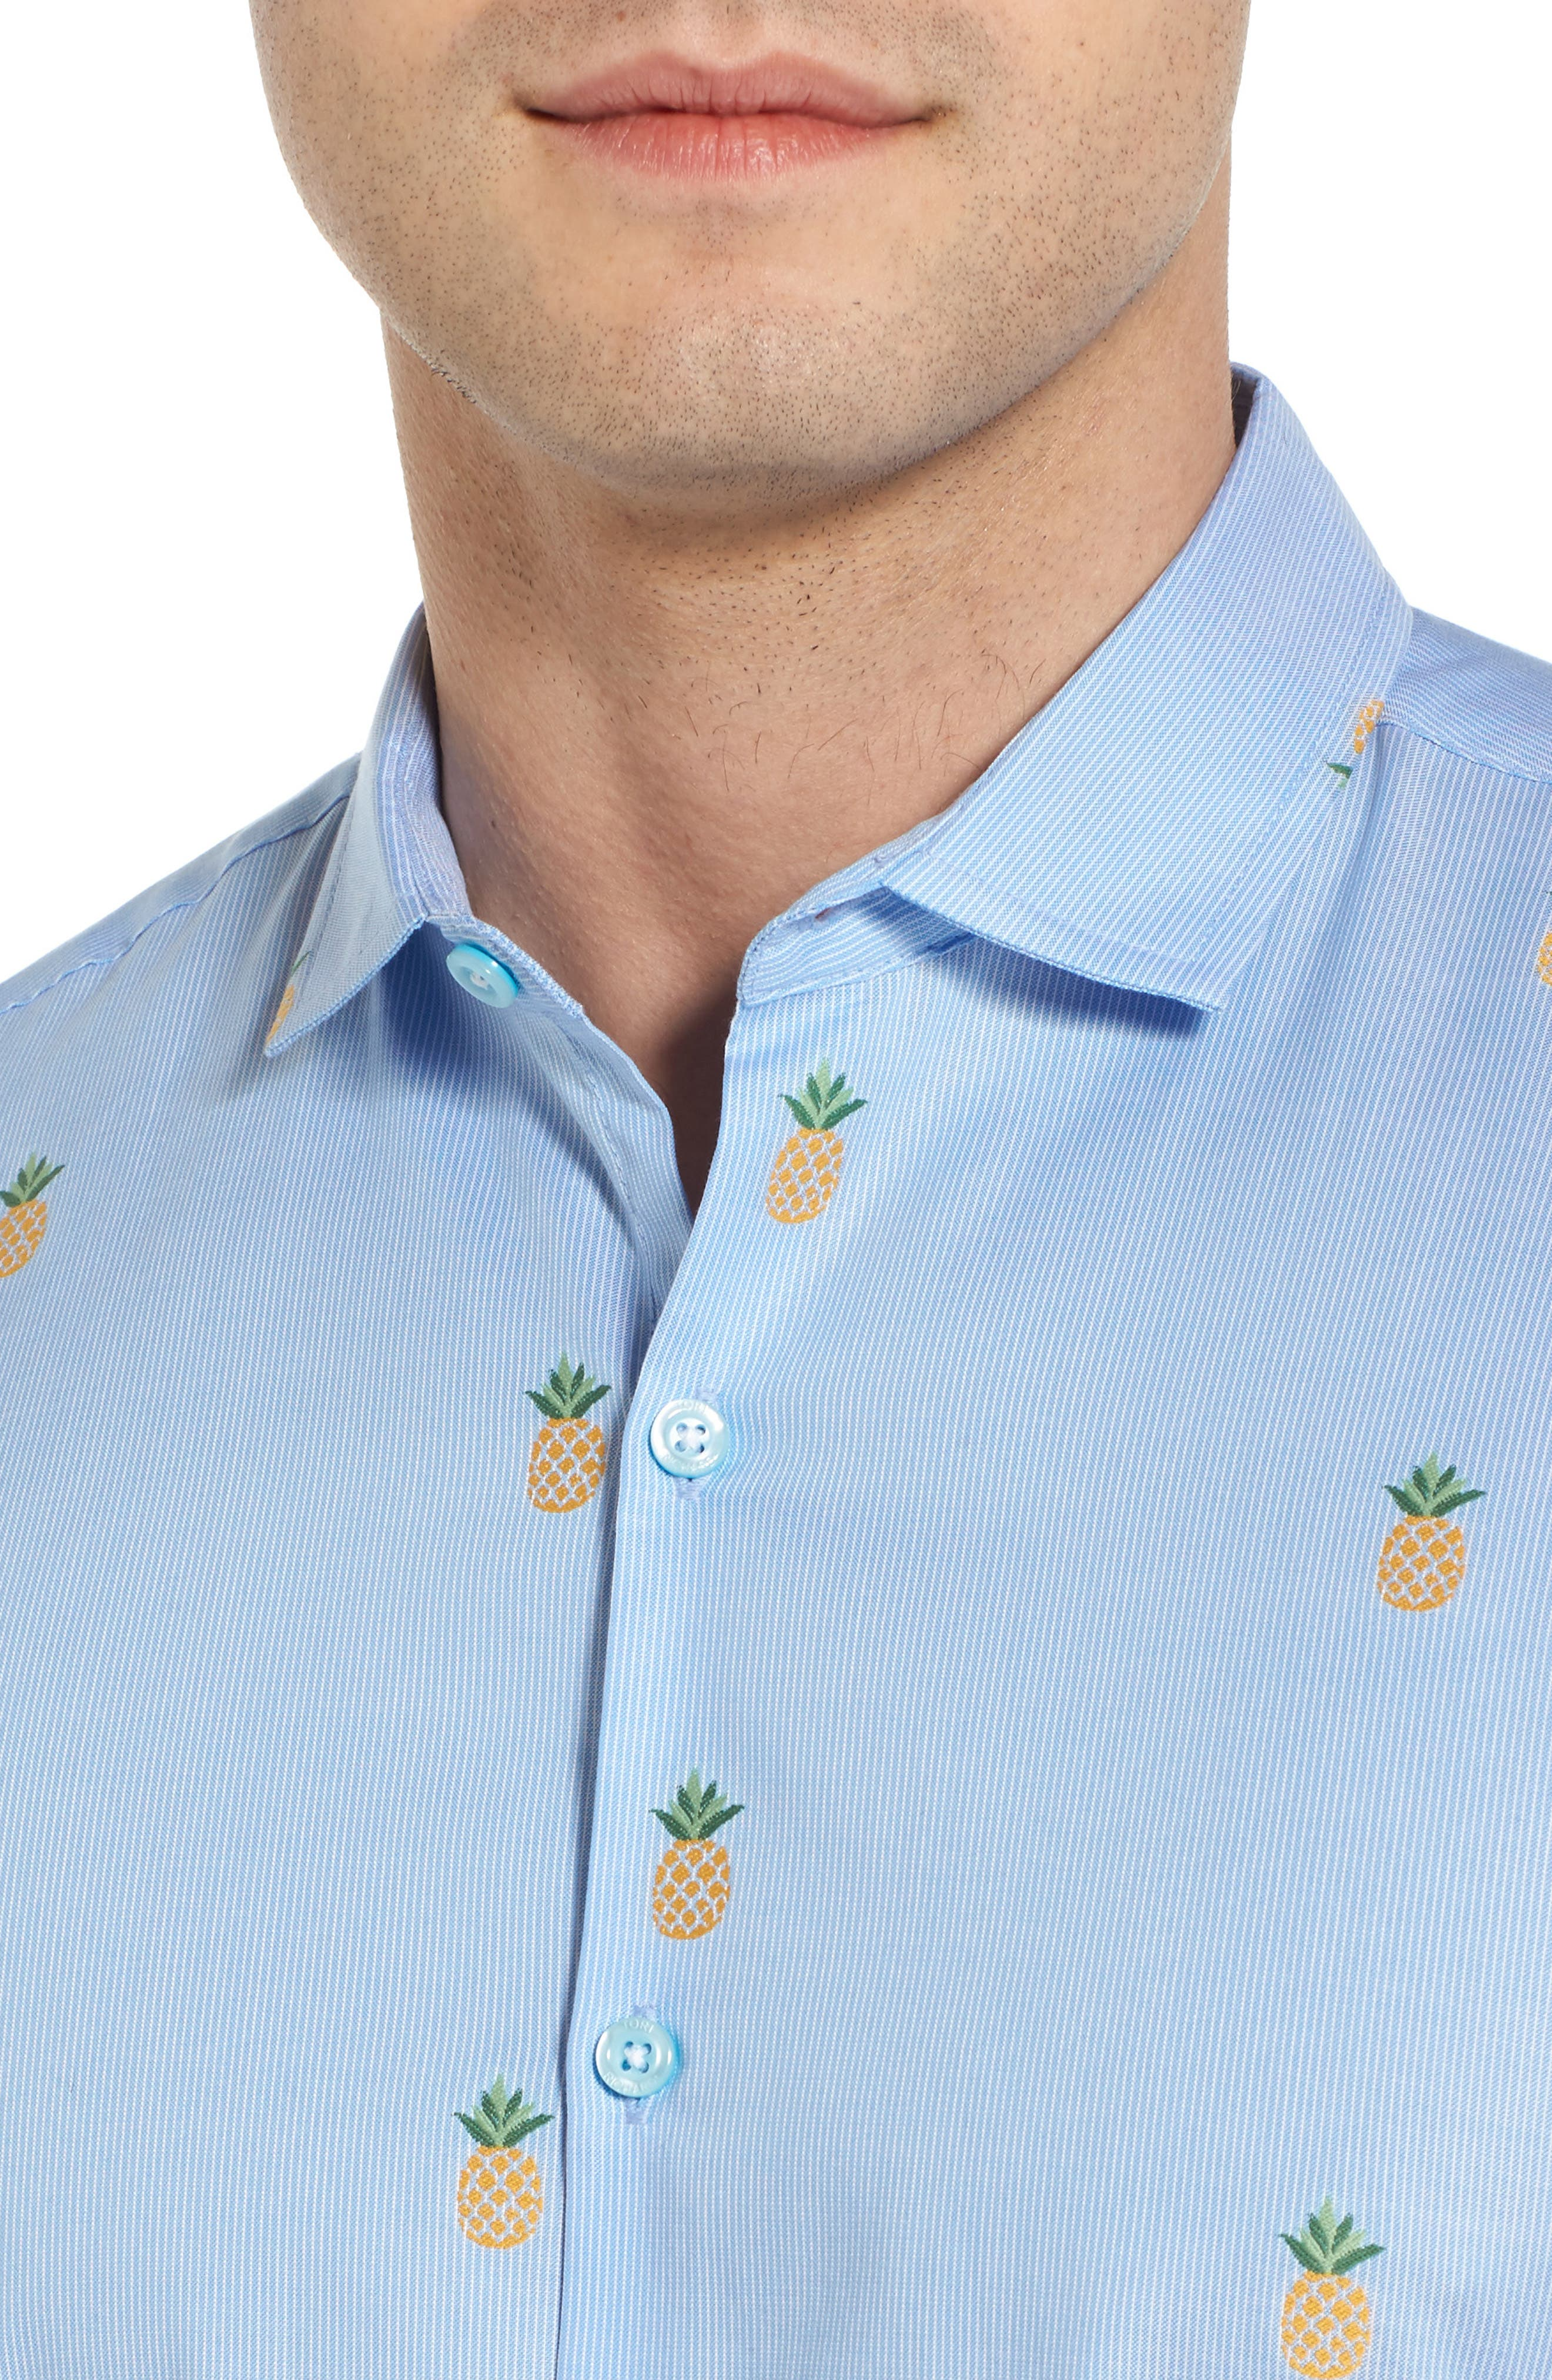 Dole 'N' Row Trim Fit Embroidered Sport Shirt,                             Alternate thumbnail 4, color,                             Blue